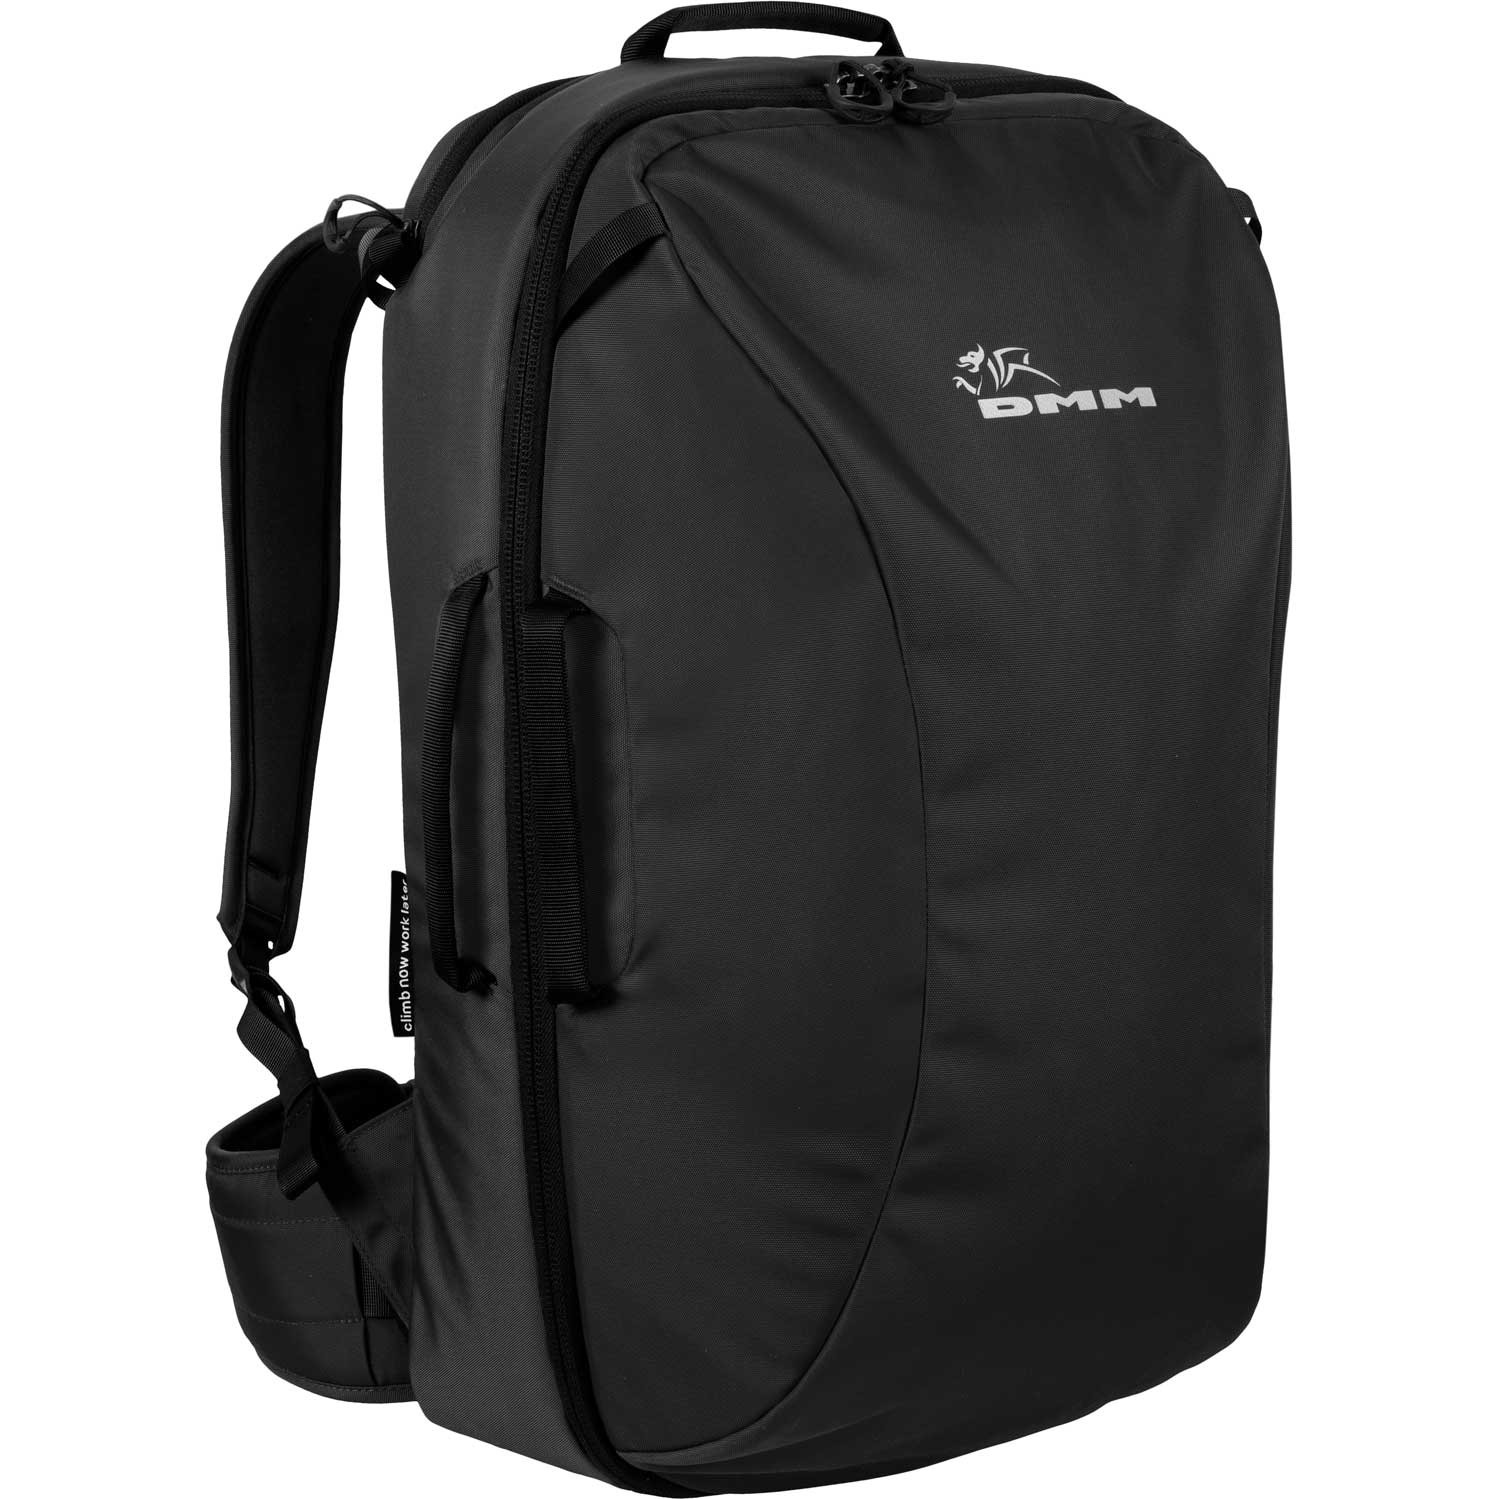 DMM Flight Rucksack - Black